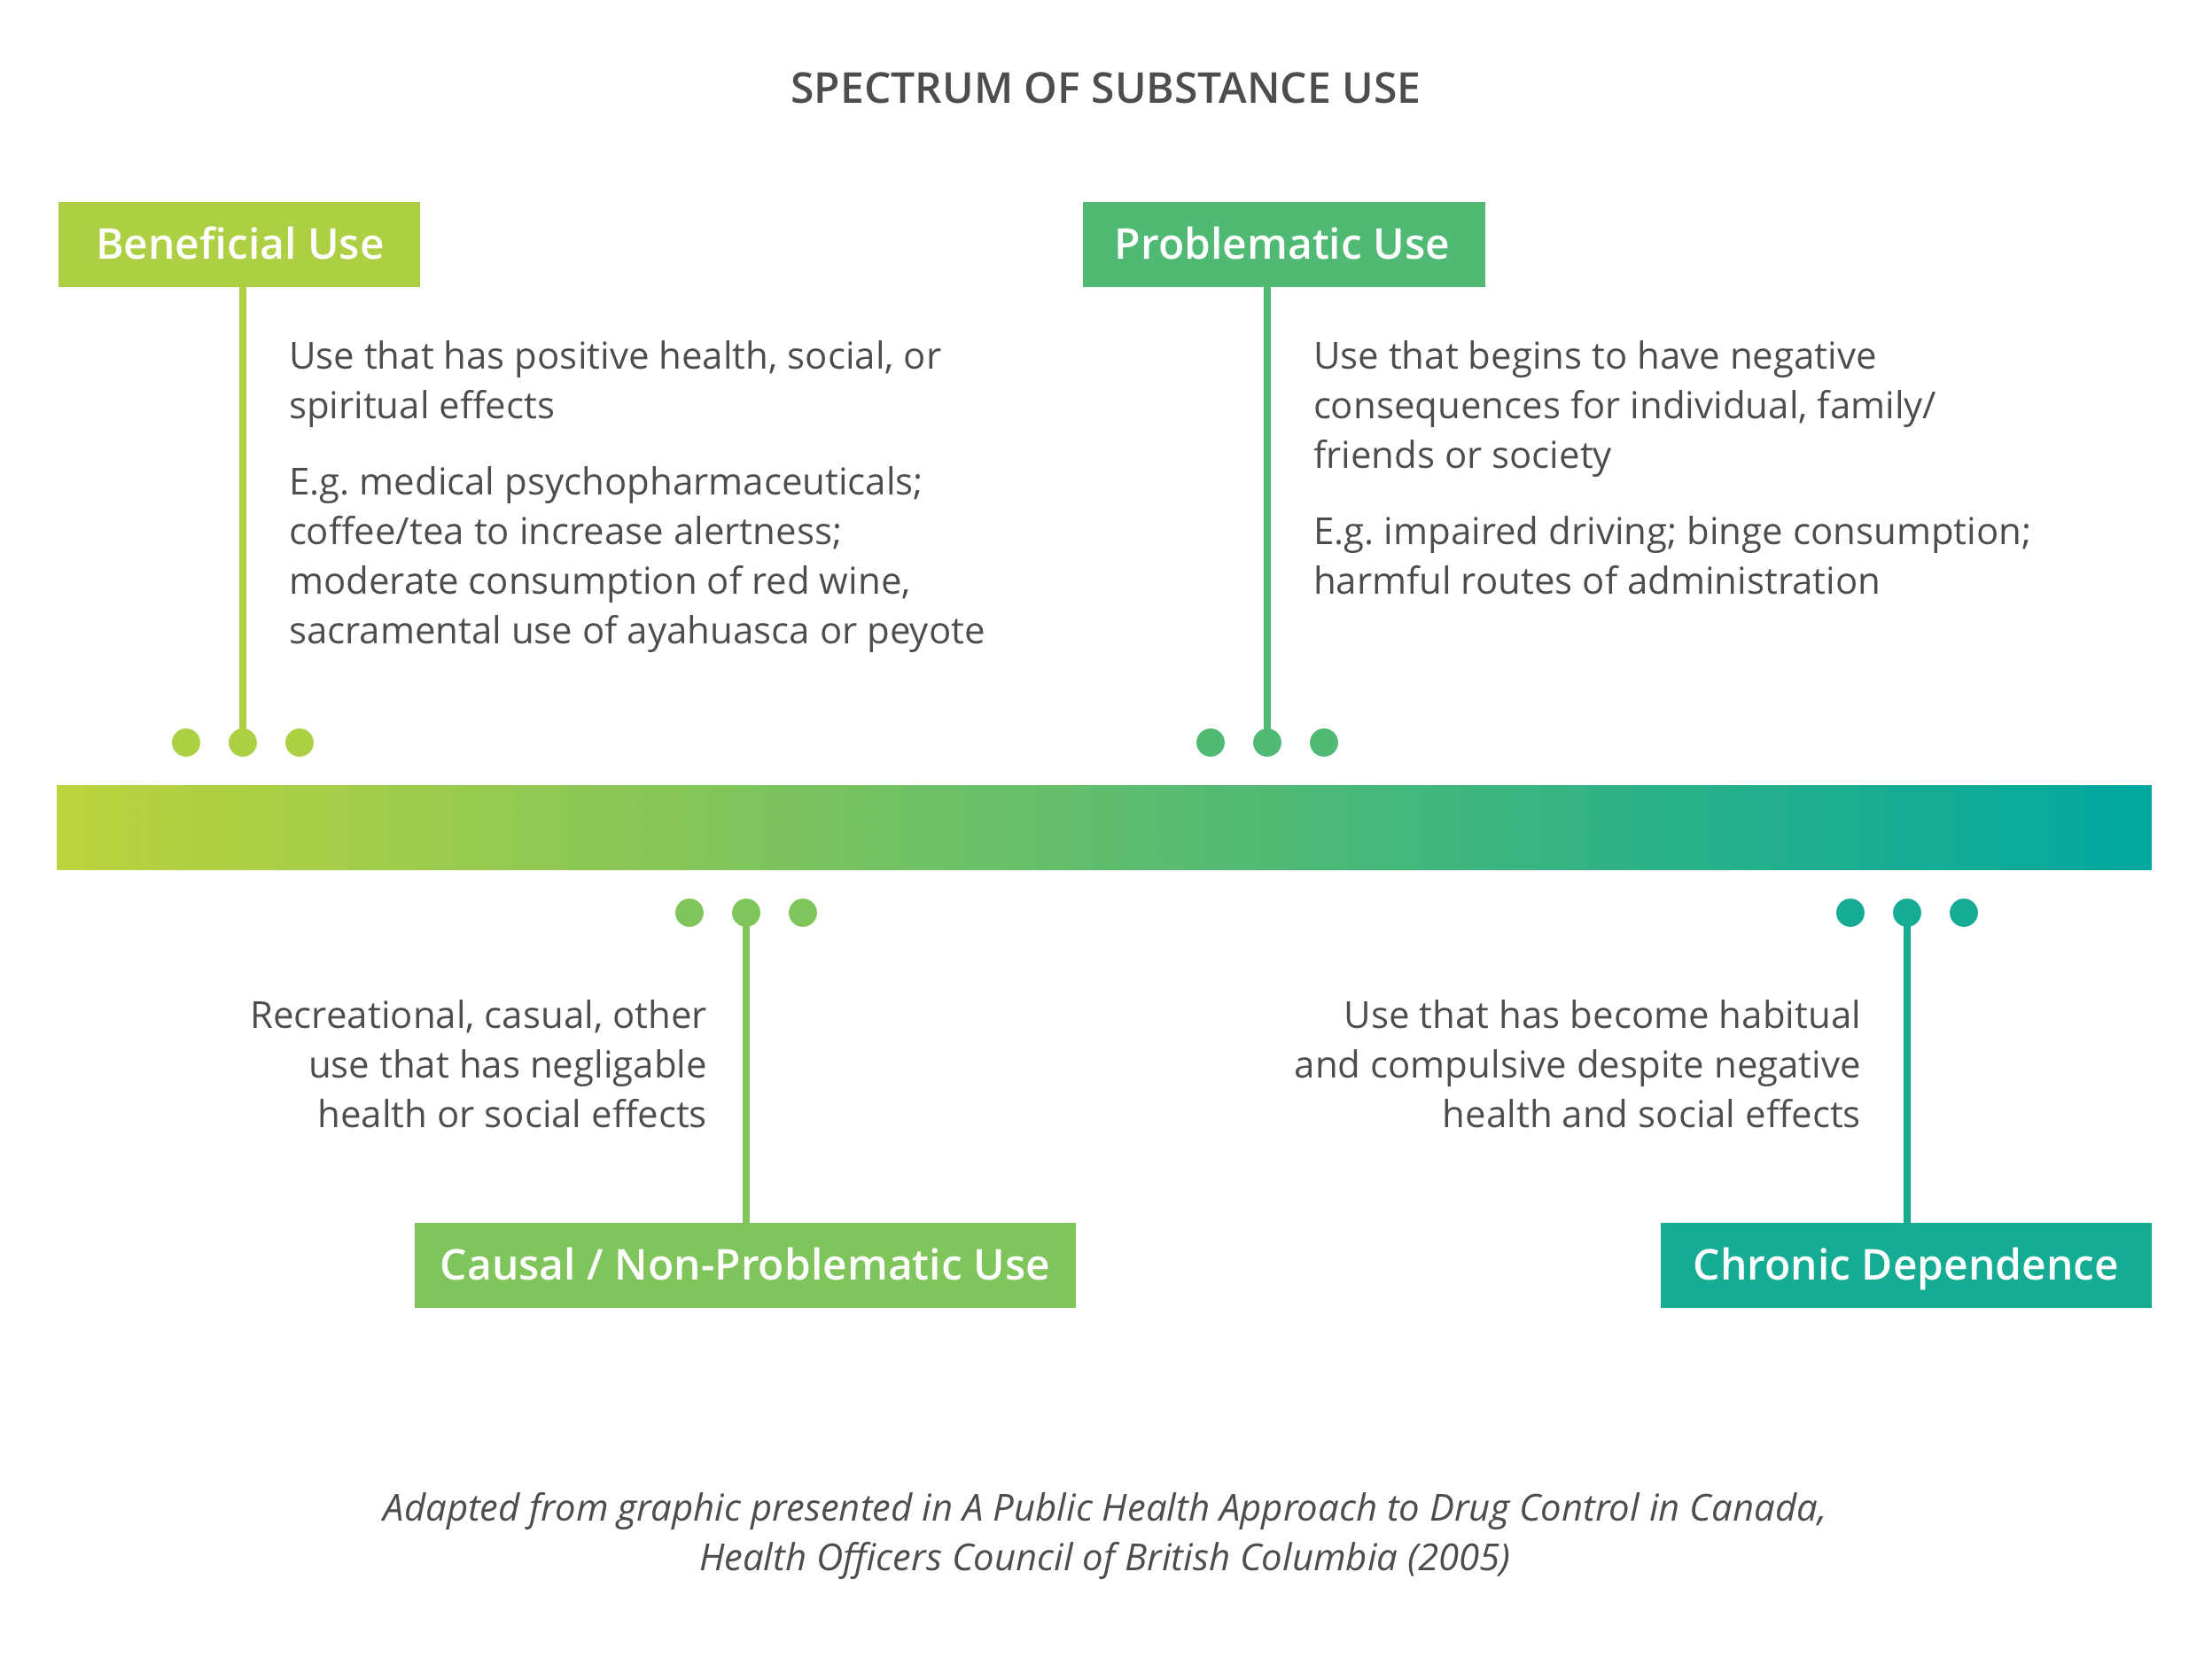 Illustration of the Spectrum of Substance Abuse